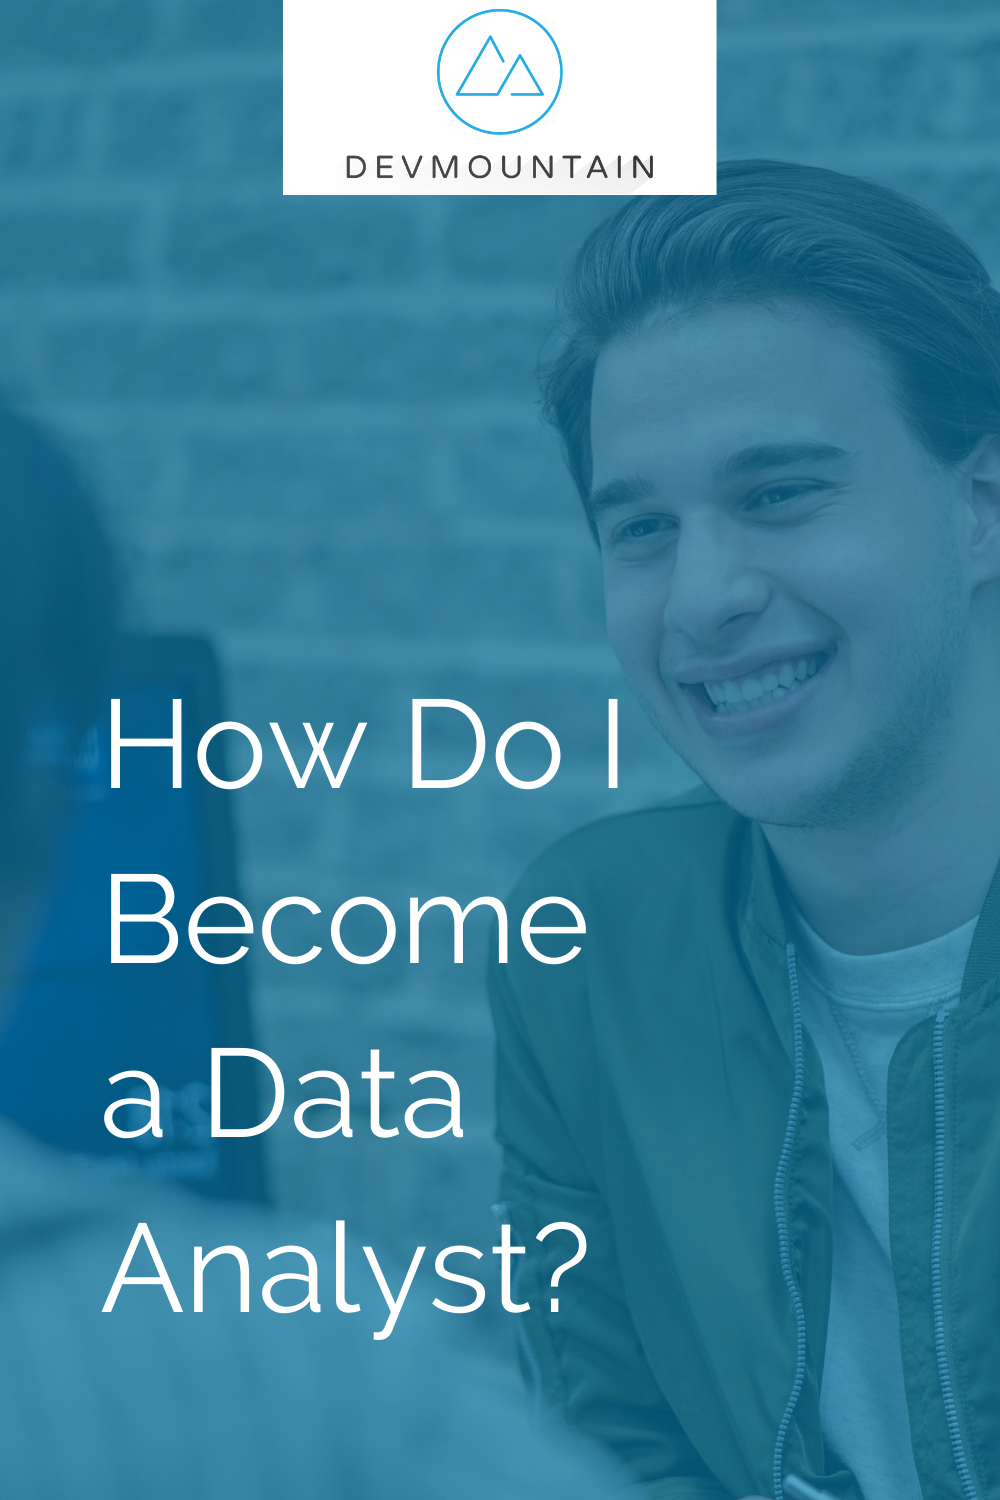 How Do I Become a Data Analyst?